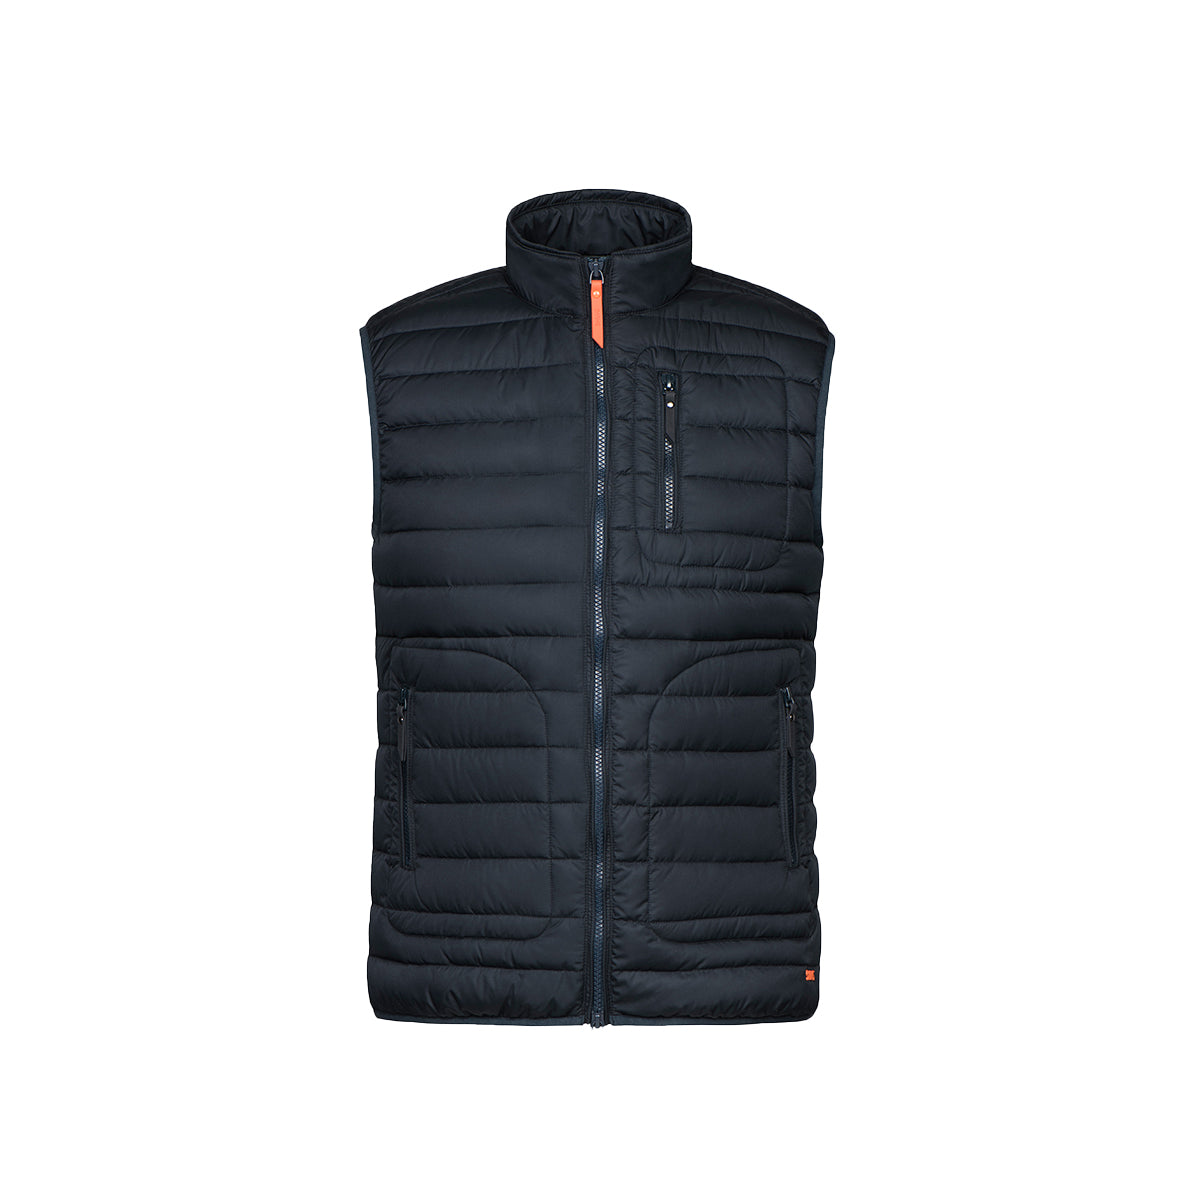 Portland Gilet - background::white,variant::dark navy